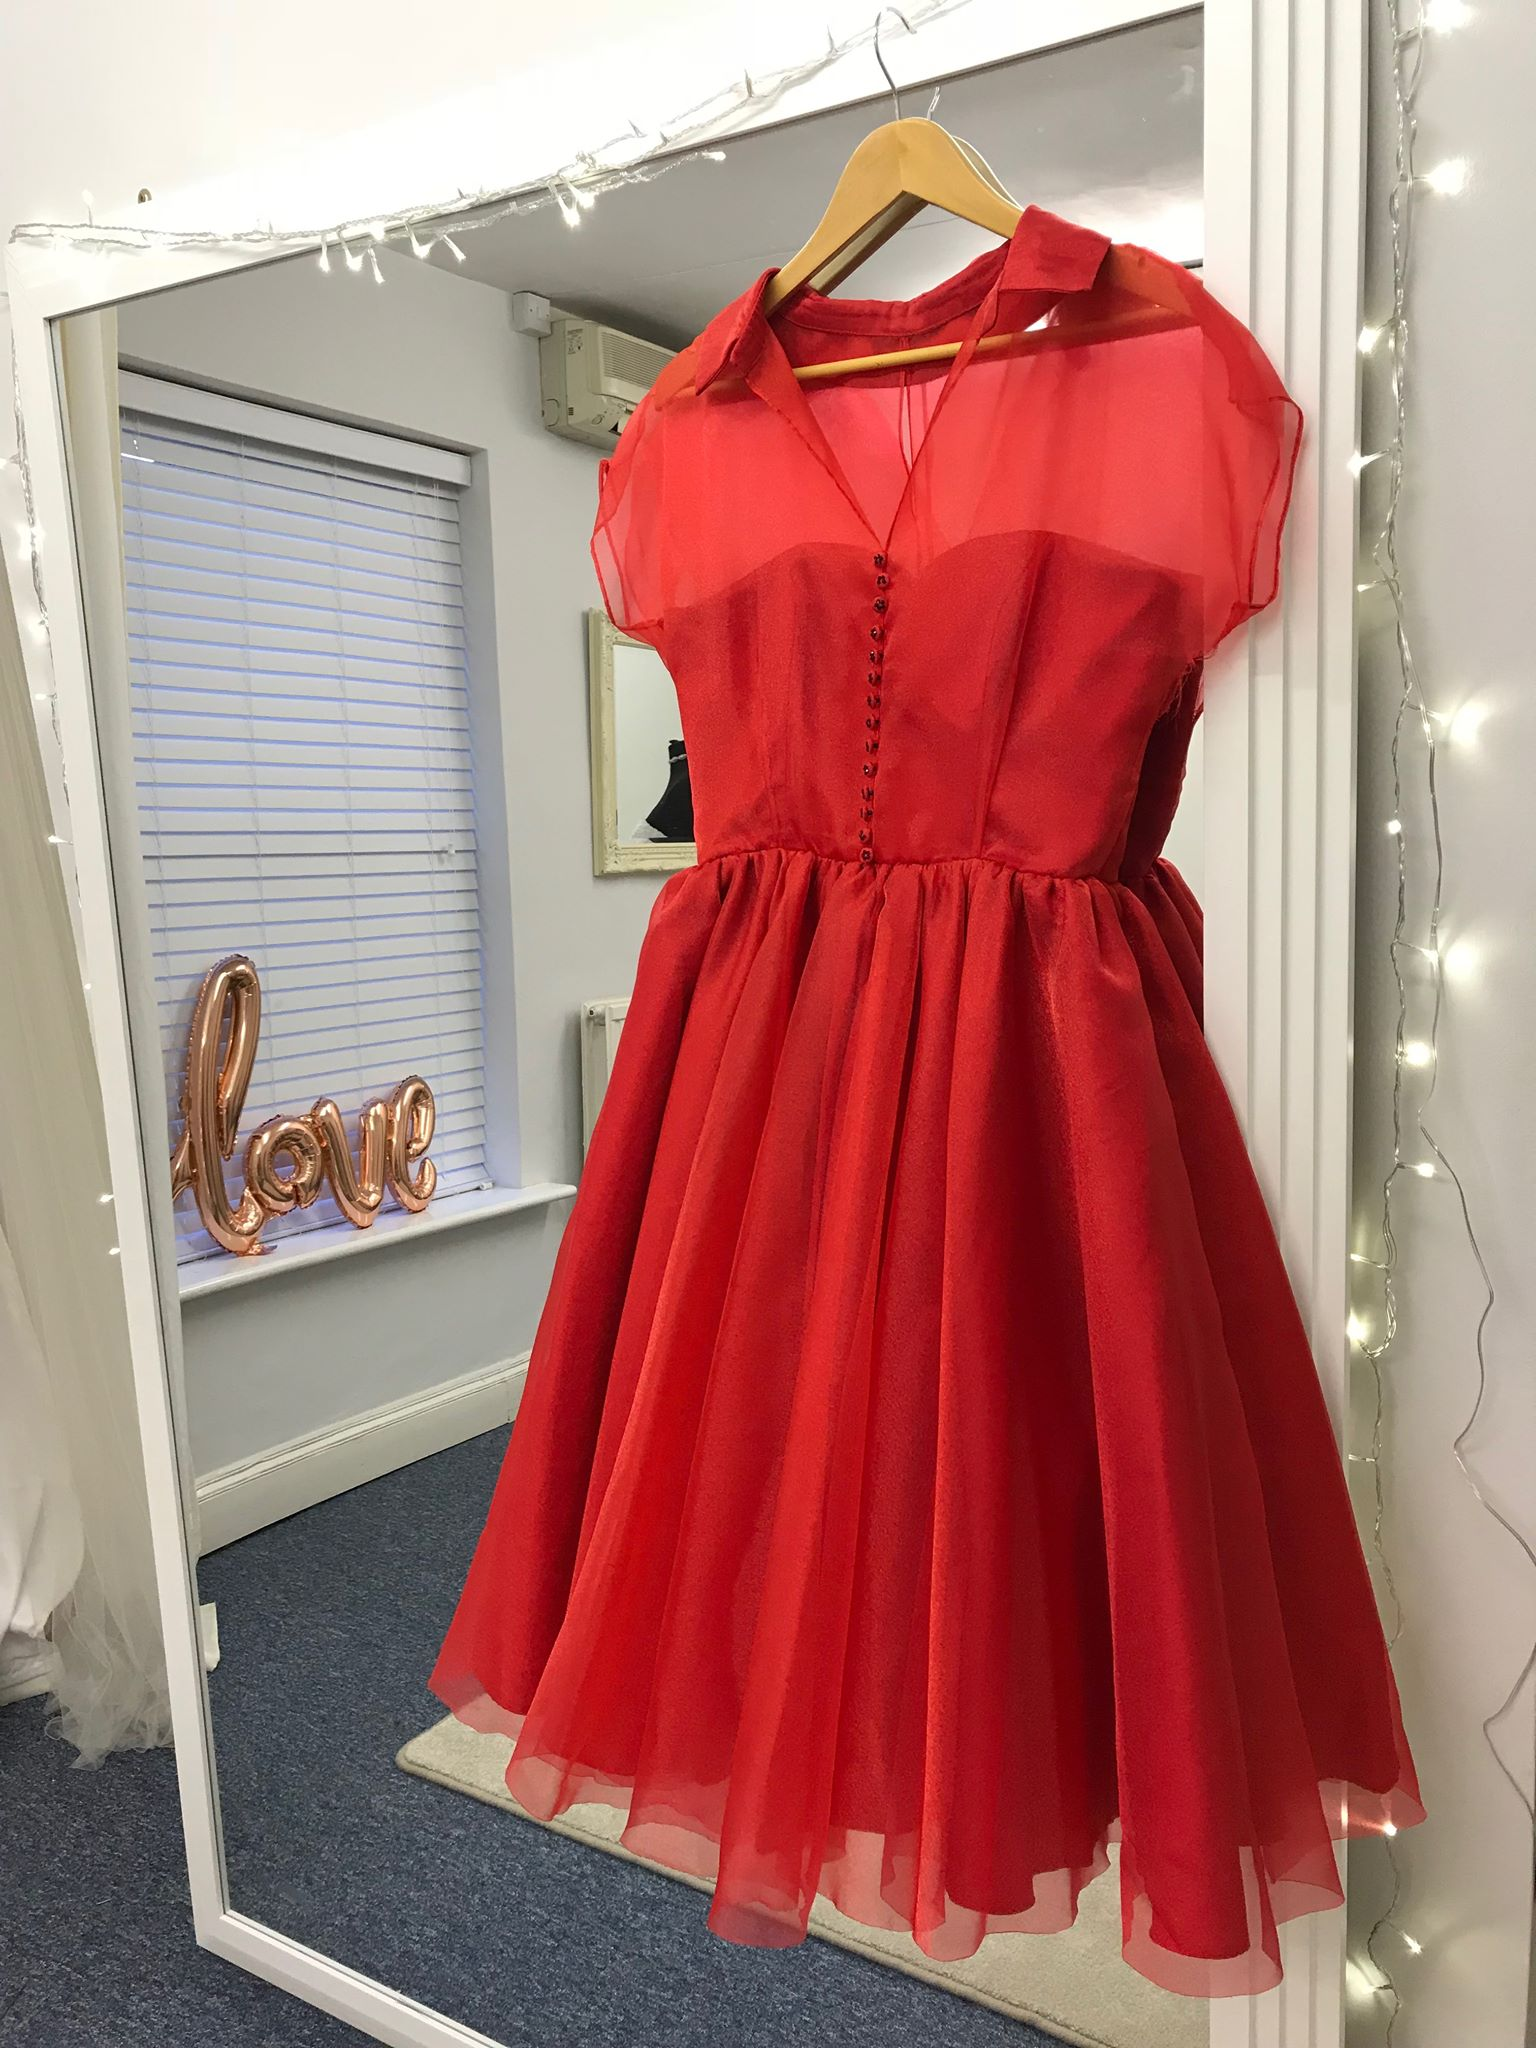 Fancy red dress